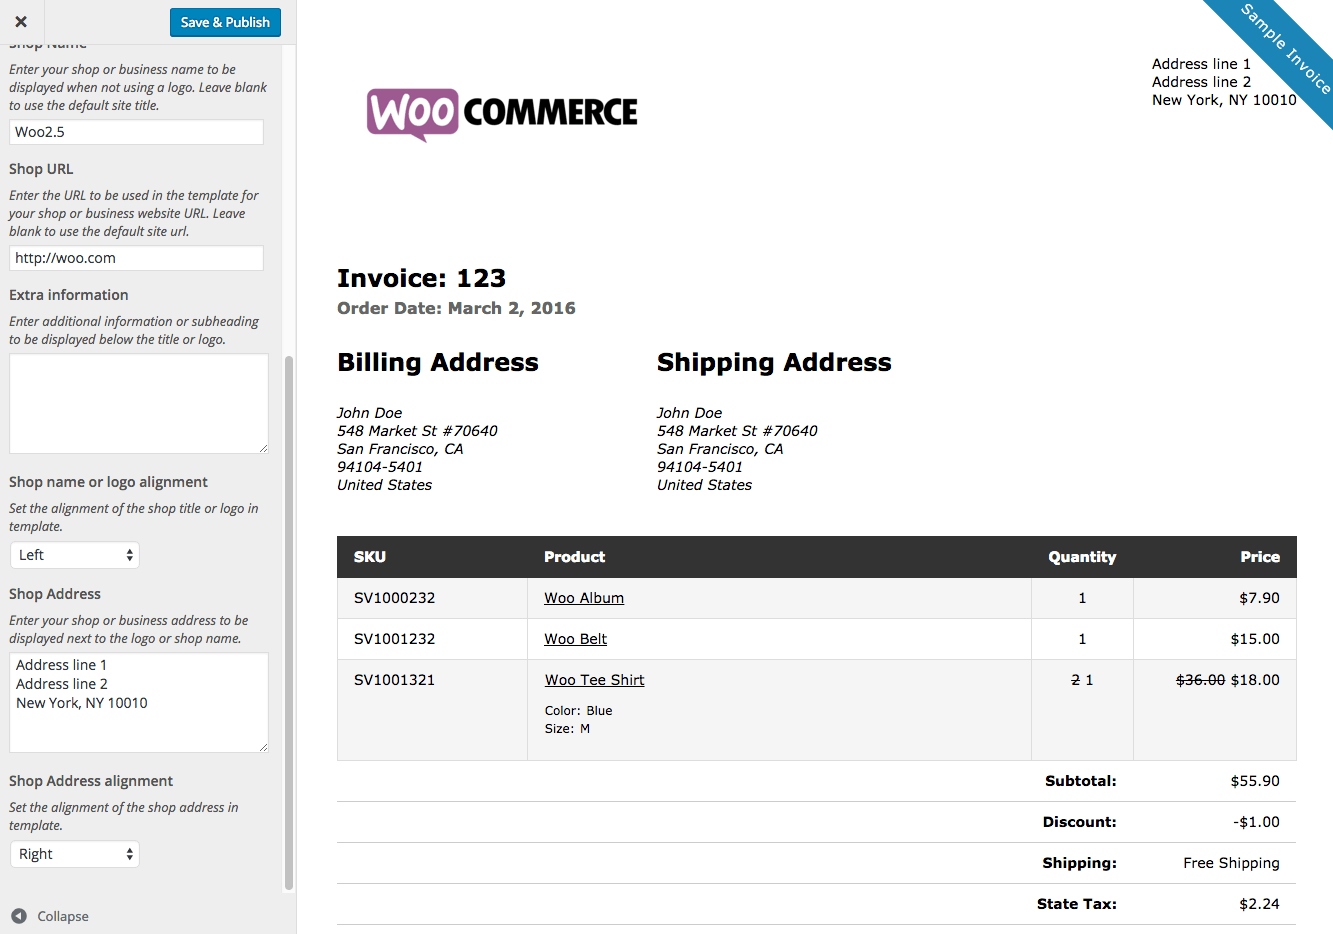 Maidofhonortoastus  Wonderful Print Invoices Amp Packing Lists  Woocommerce With Heavenly Woocommerce Print Invoices  Packing Lists Customizer With Agreeable Free Uk Invoice Template Also Computer Service Invoice Template In Addition Sample Service Invoice Template And How To Do Invoices On Word As Well As Po Invoices Additionally Hsbc Invoice Finance Log On From Woocommercecom With Maidofhonortoastus  Heavenly Print Invoices Amp Packing Lists  Woocommerce With Agreeable Woocommerce Print Invoices  Packing Lists Customizer And Wonderful Free Uk Invoice Template Also Computer Service Invoice Template In Addition Sample Service Invoice Template From Woocommercecom